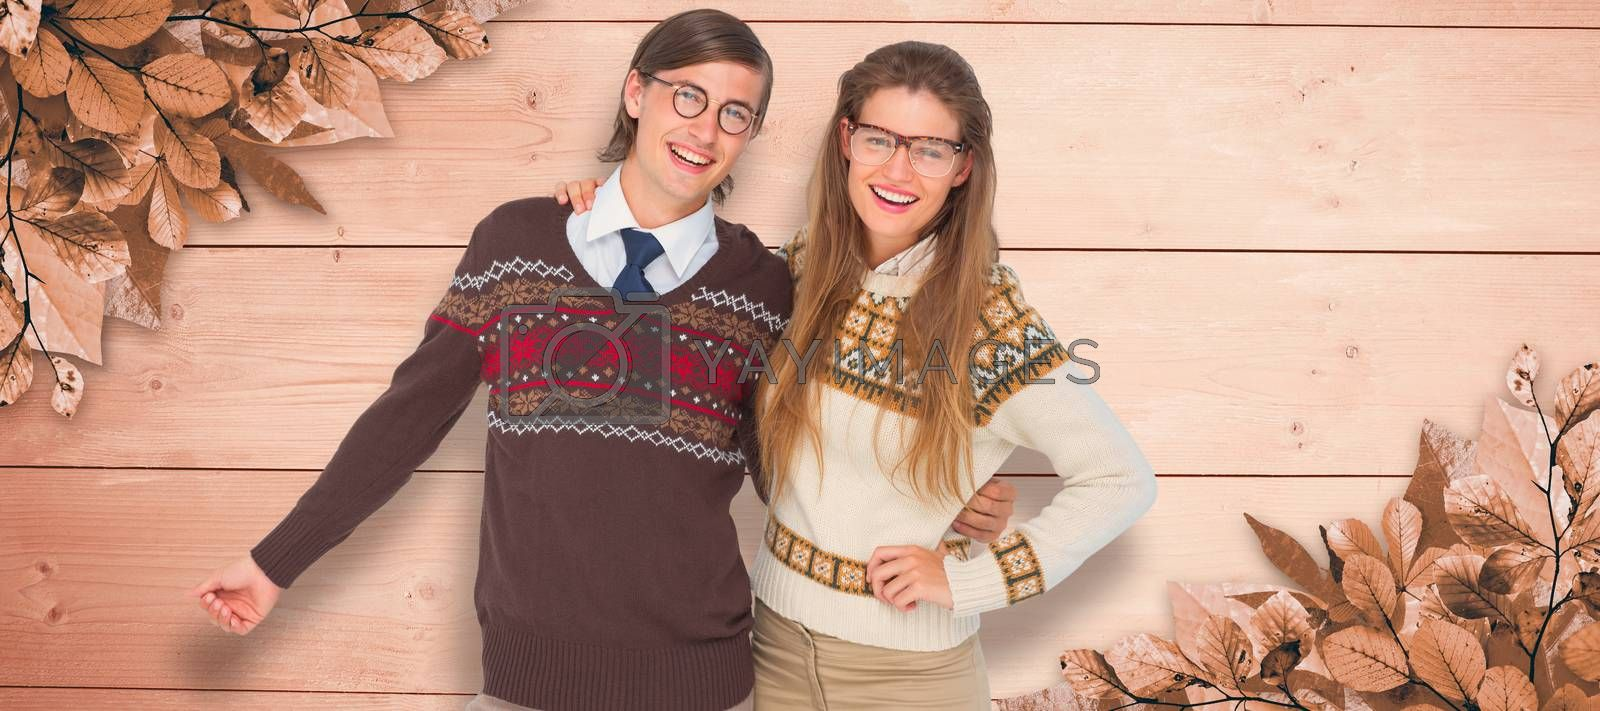 Happy geeky hipster couple embracing against overhead of wooden planks